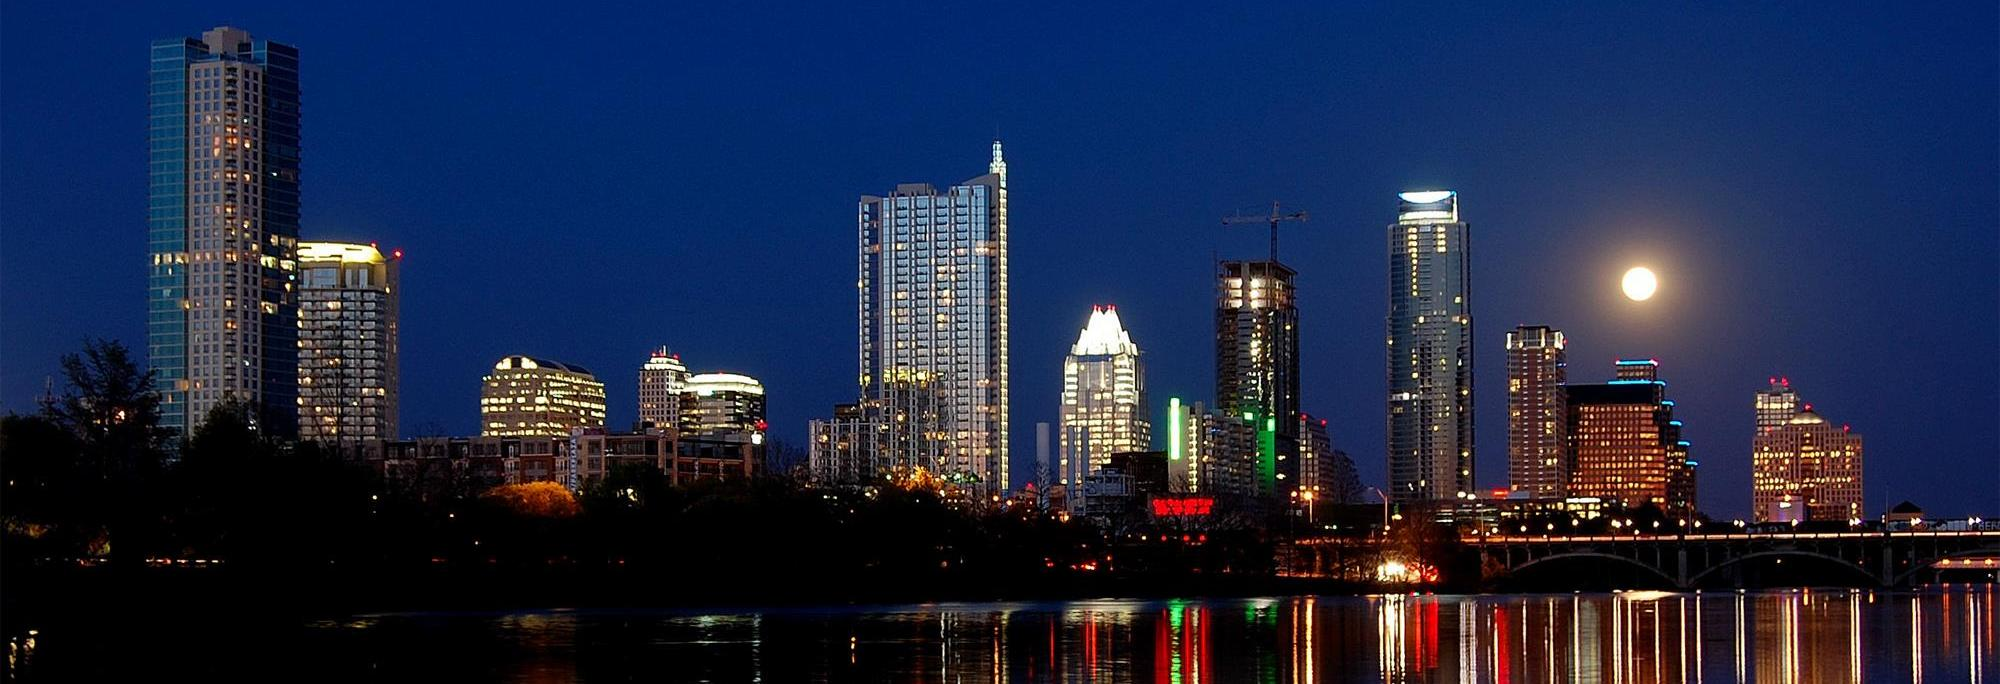 shining image cleaning janitorial services austin georgetown marcos san antonio texas banner